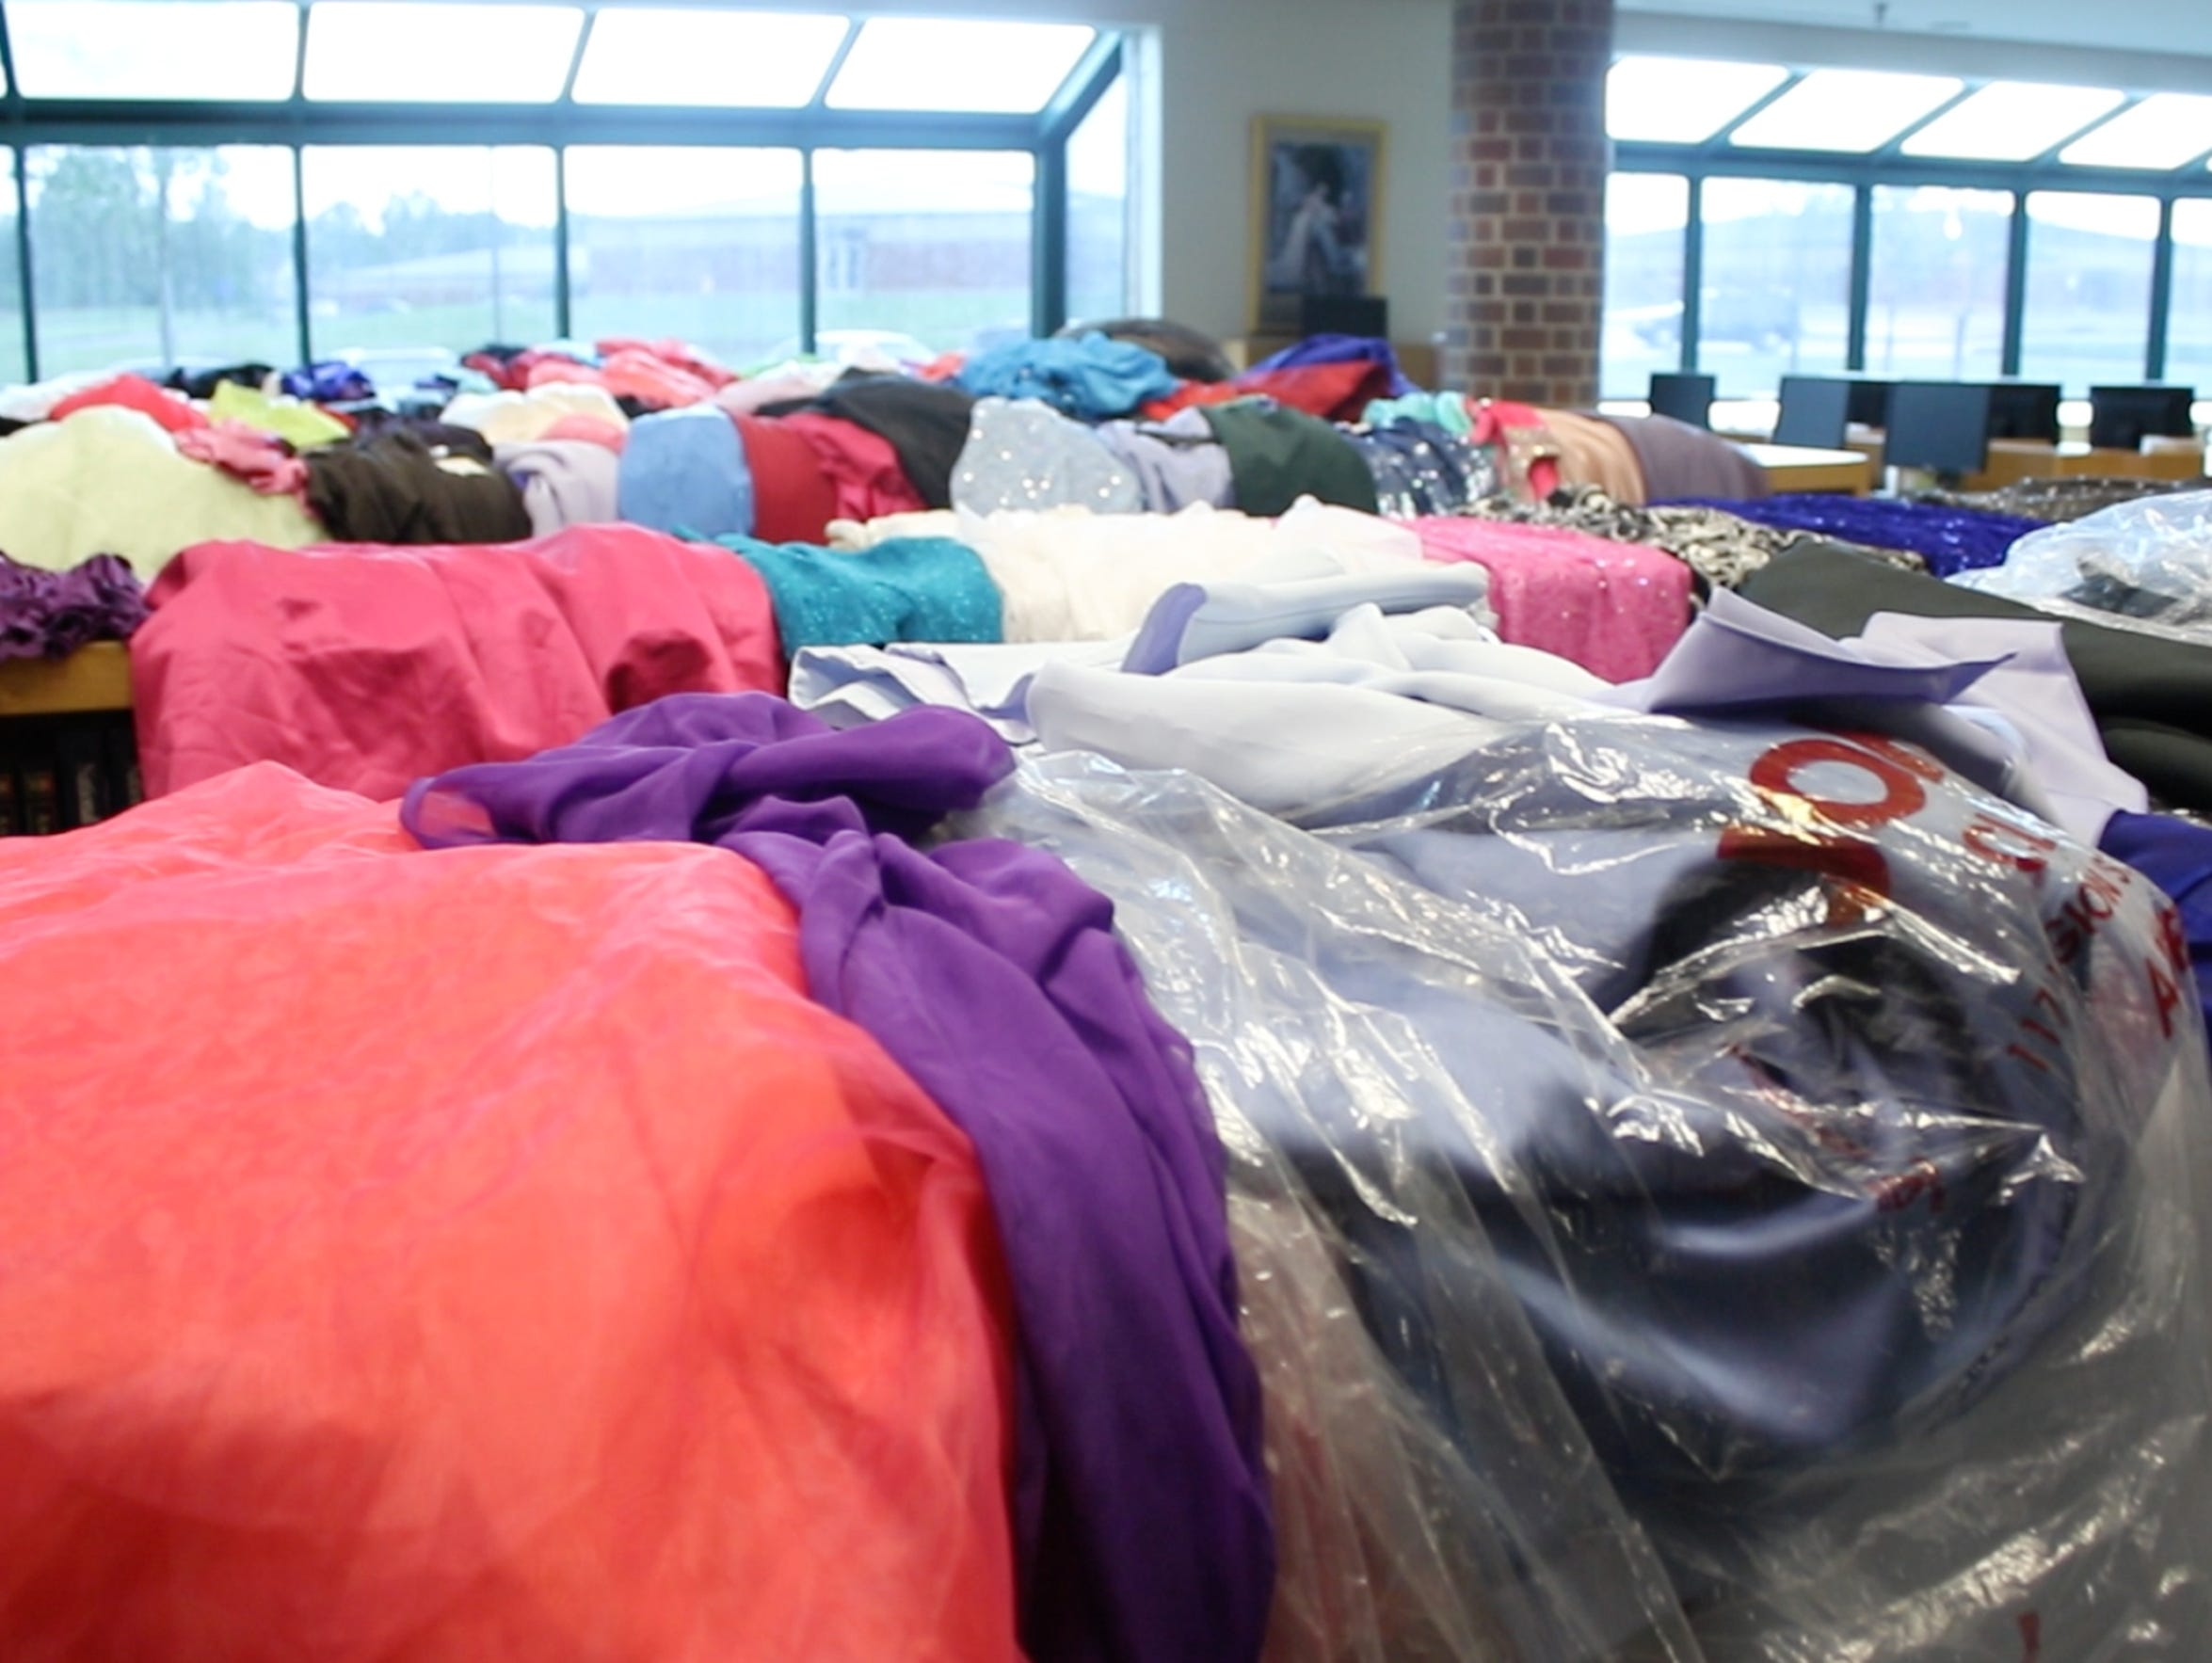 Prom dresses donated to Teens4Teens for students in